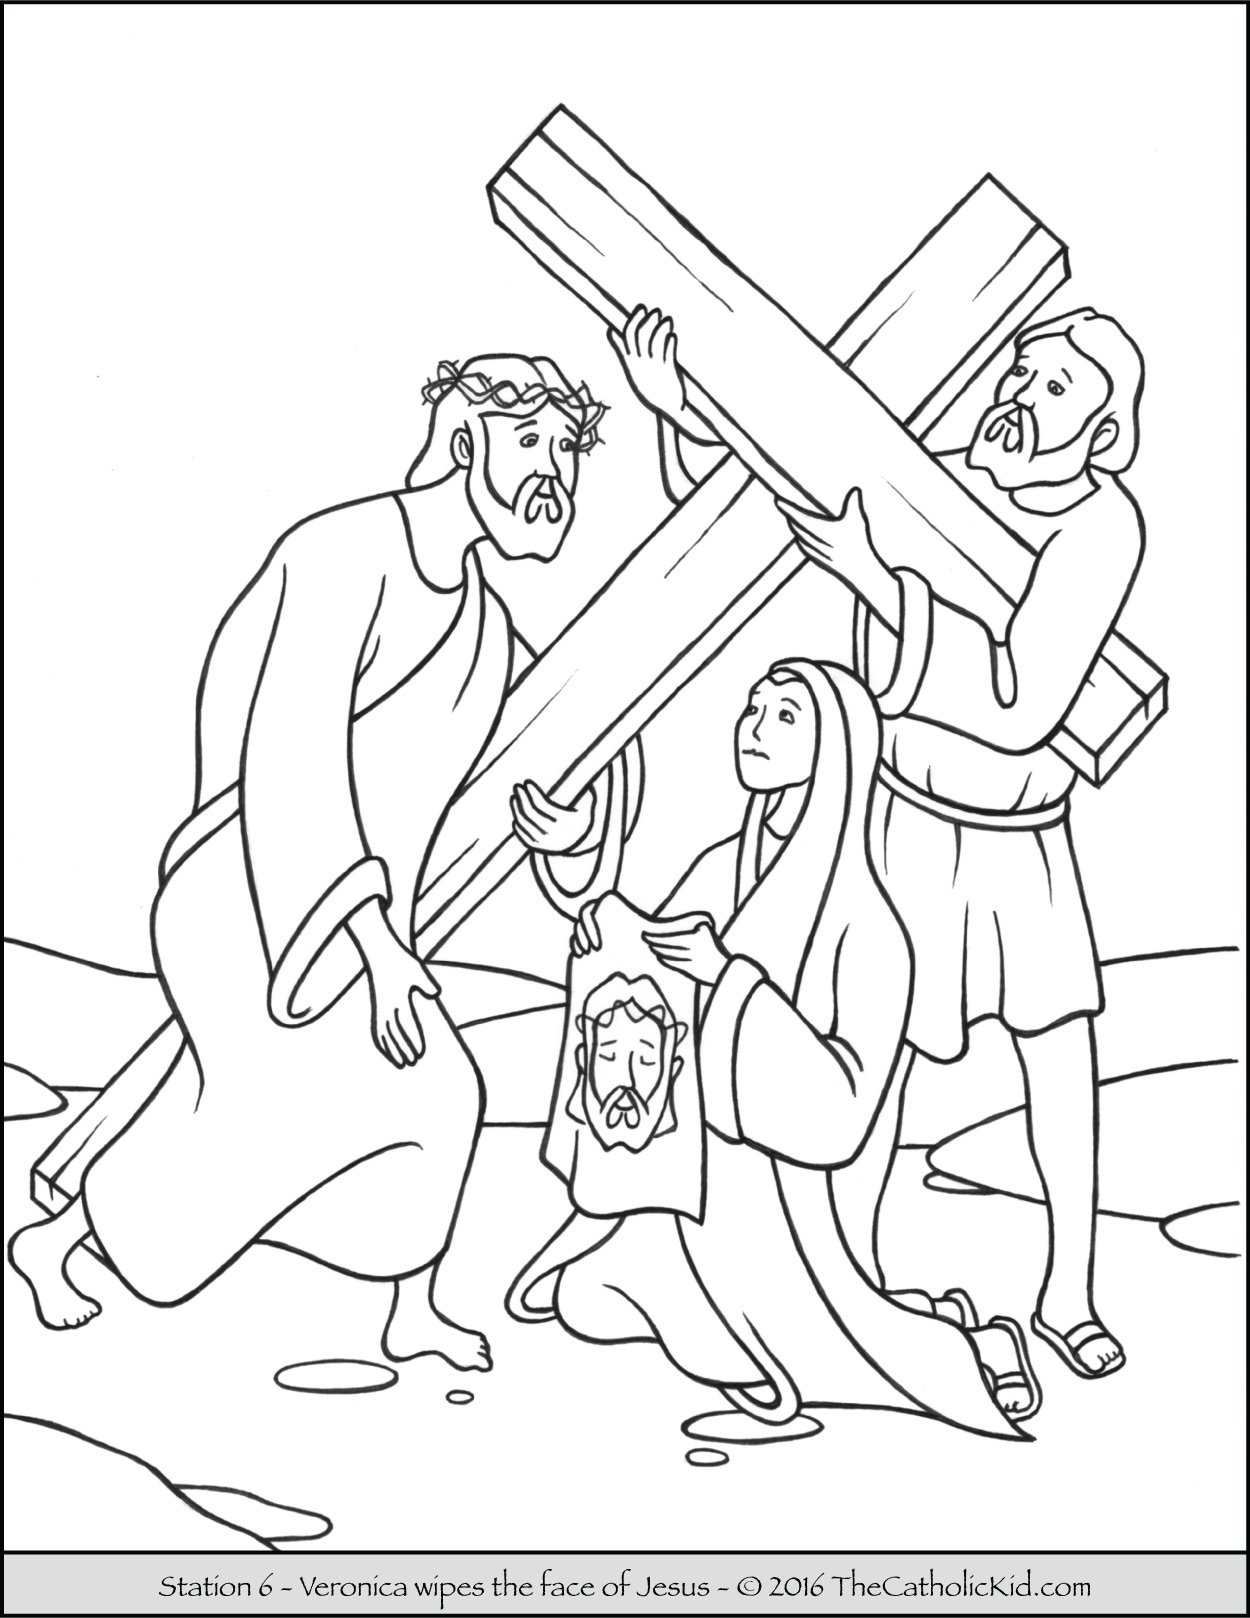 Stations of the Cross Coloring Pages - The Catholic Kid